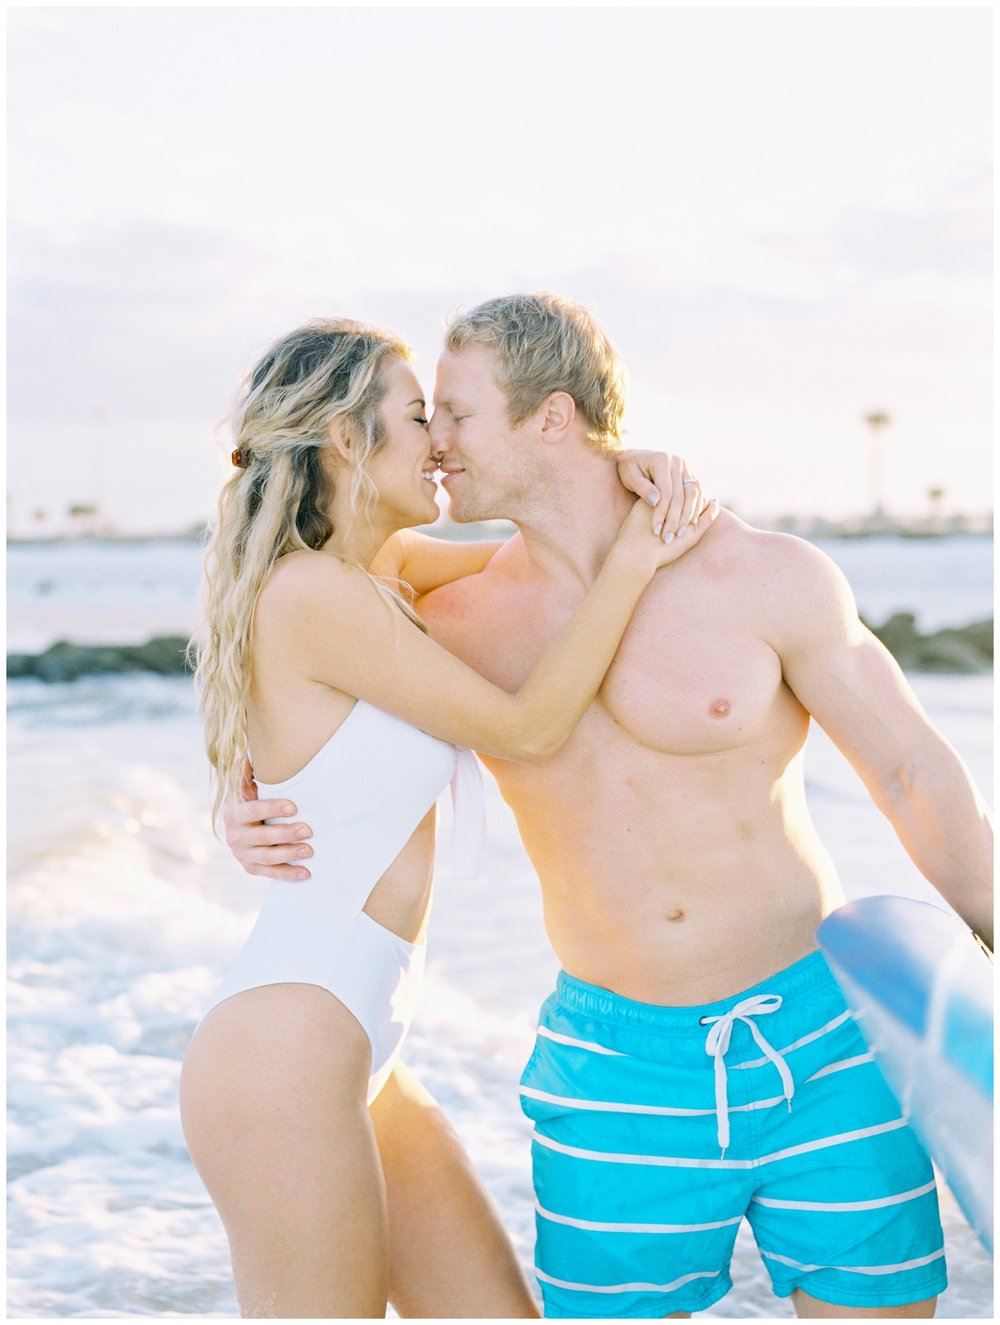 Lisa Silva Photography -Beachy Lifestyle Engagement Session in Palm Coast Florida - Jacksonville Film Photograpgers_0029.jpg